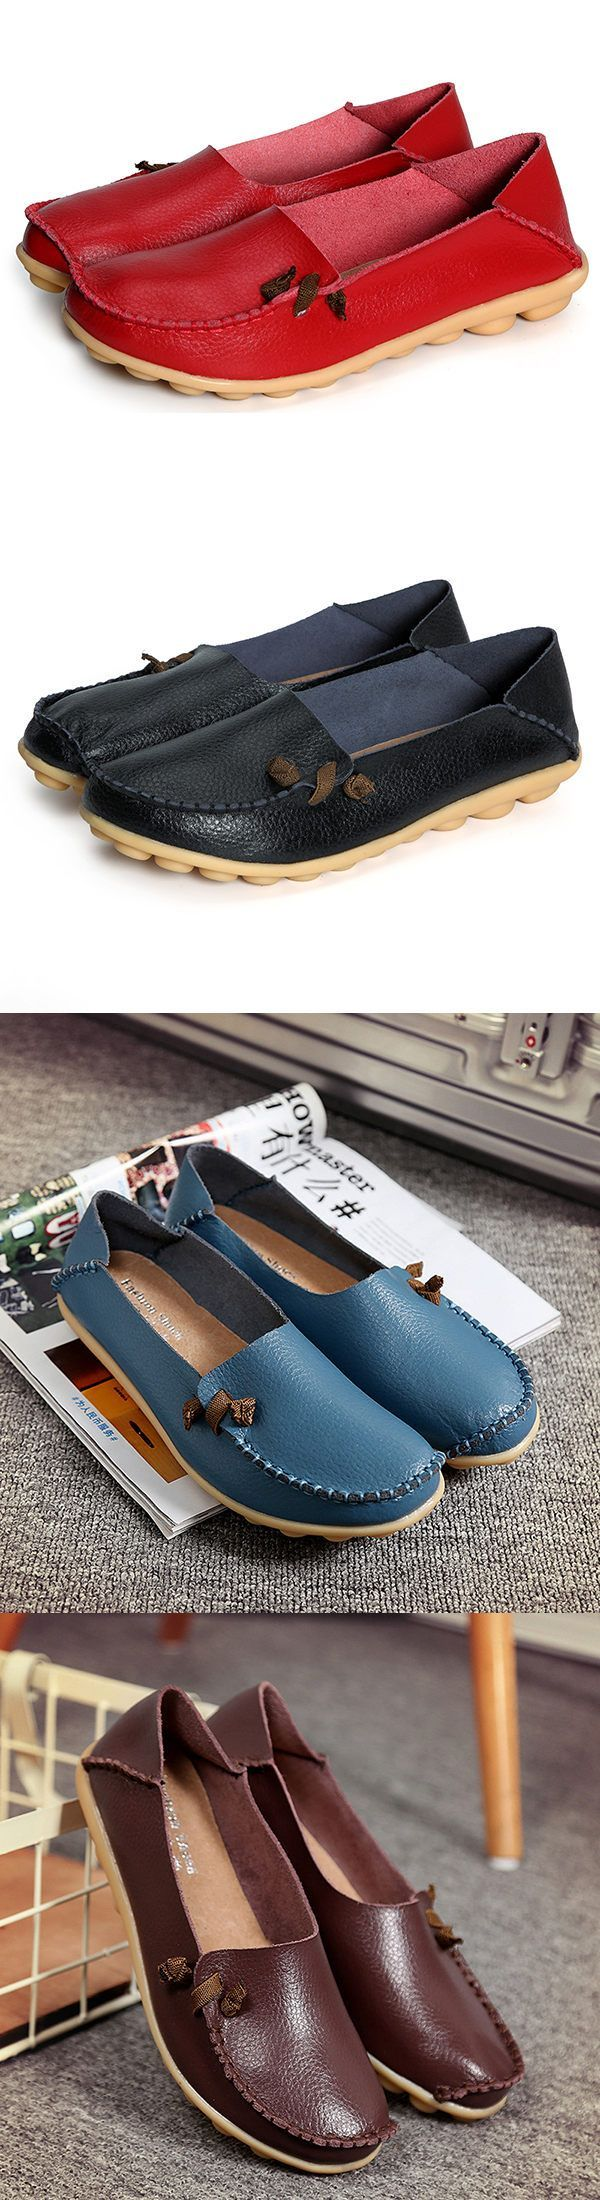 Large Size Soft Leather Multi-Way Flat Loafers For Women#shoes #redshoes #mystyle